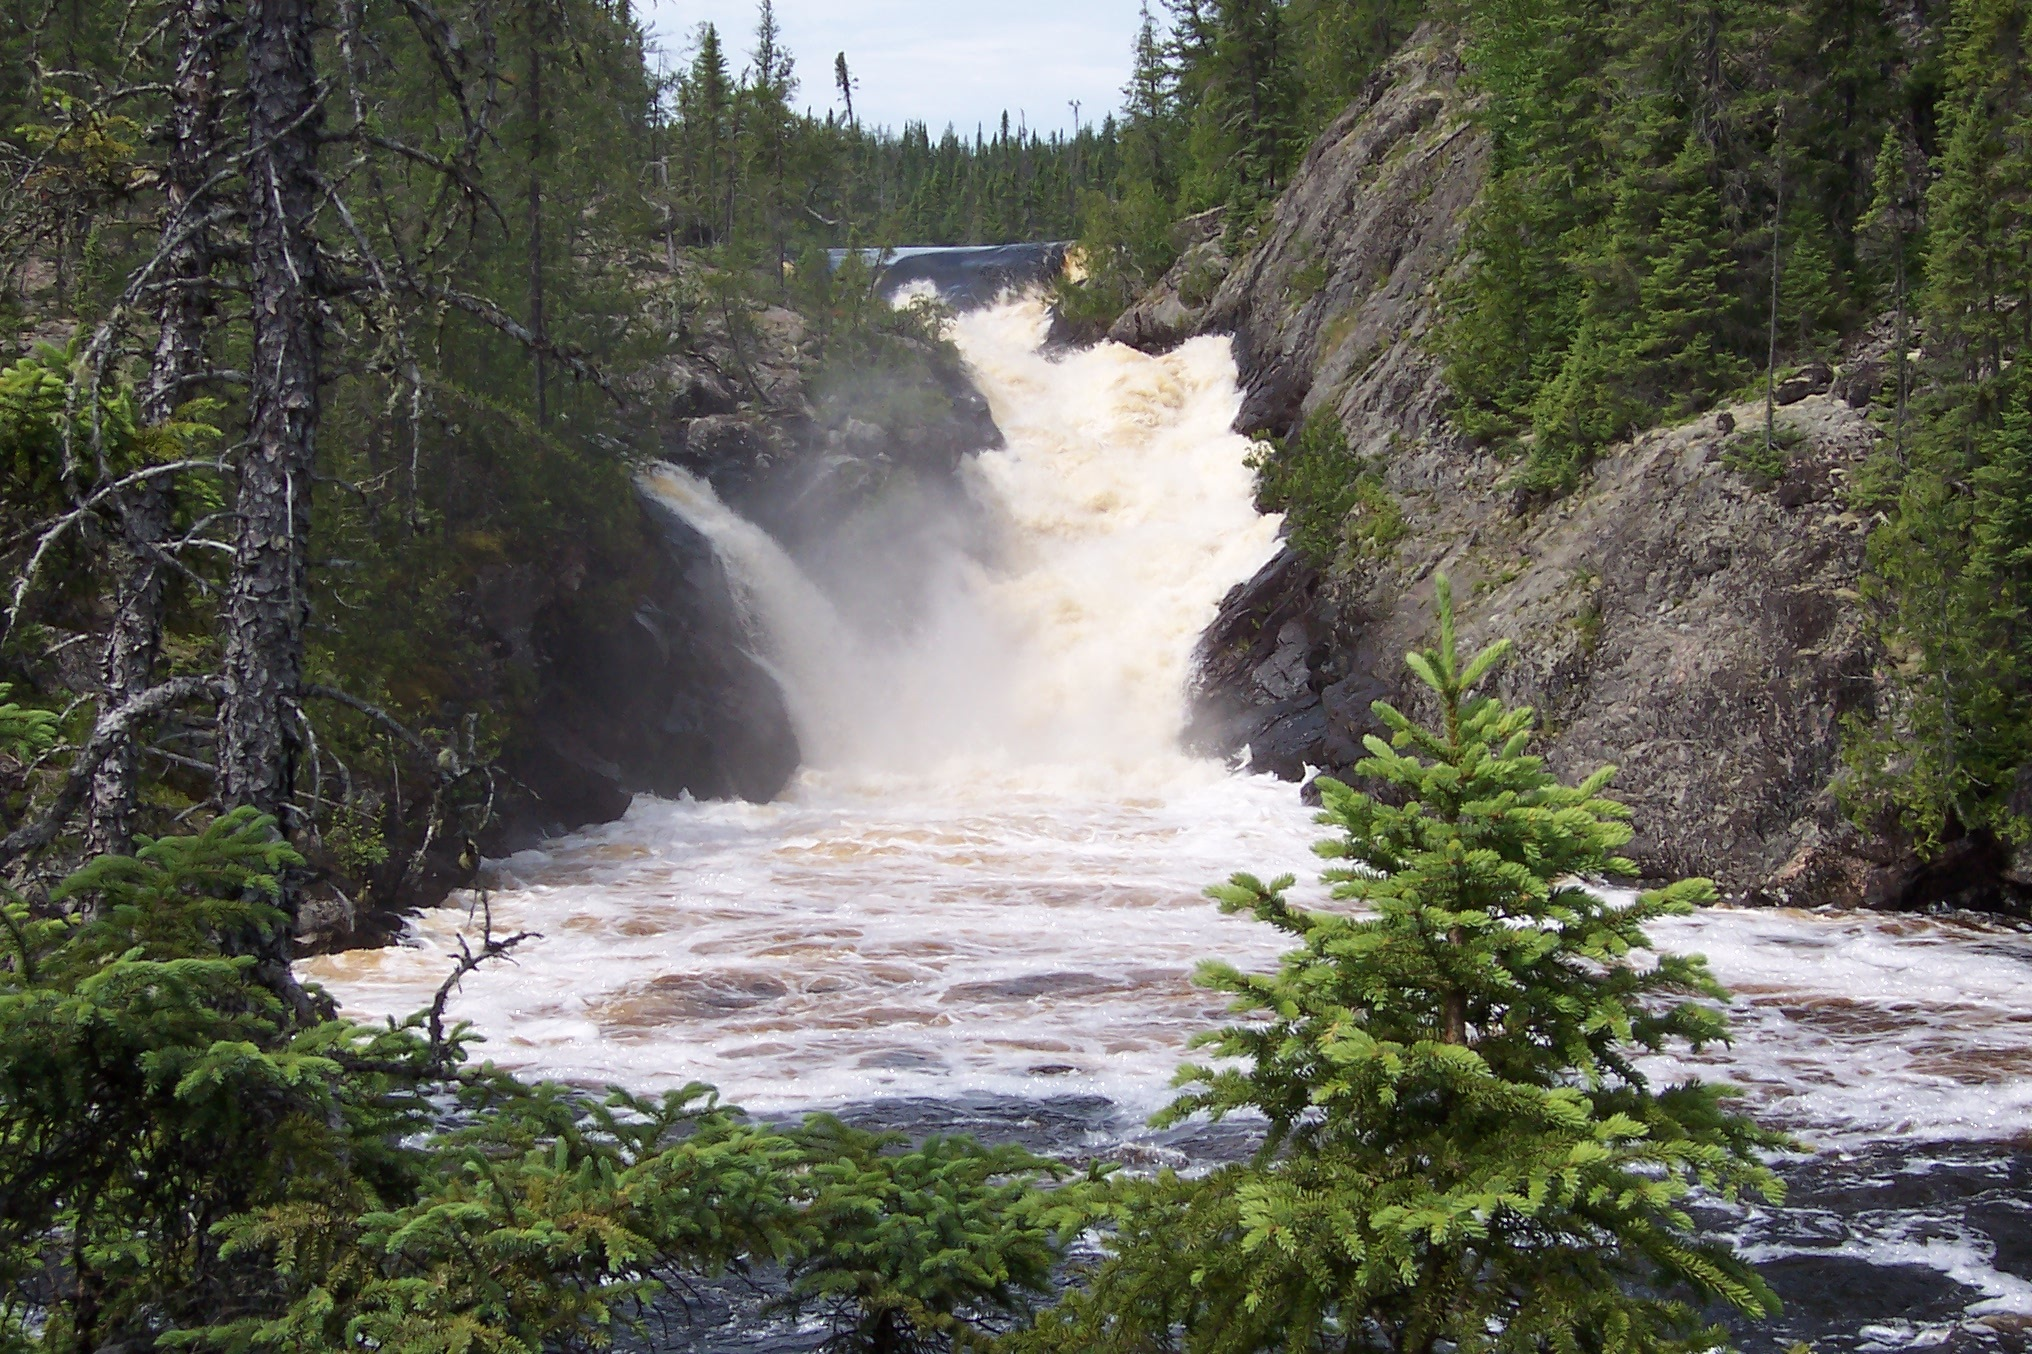 A roaring waterfall cascading down a gorge in the Wabakimi Wilderness.